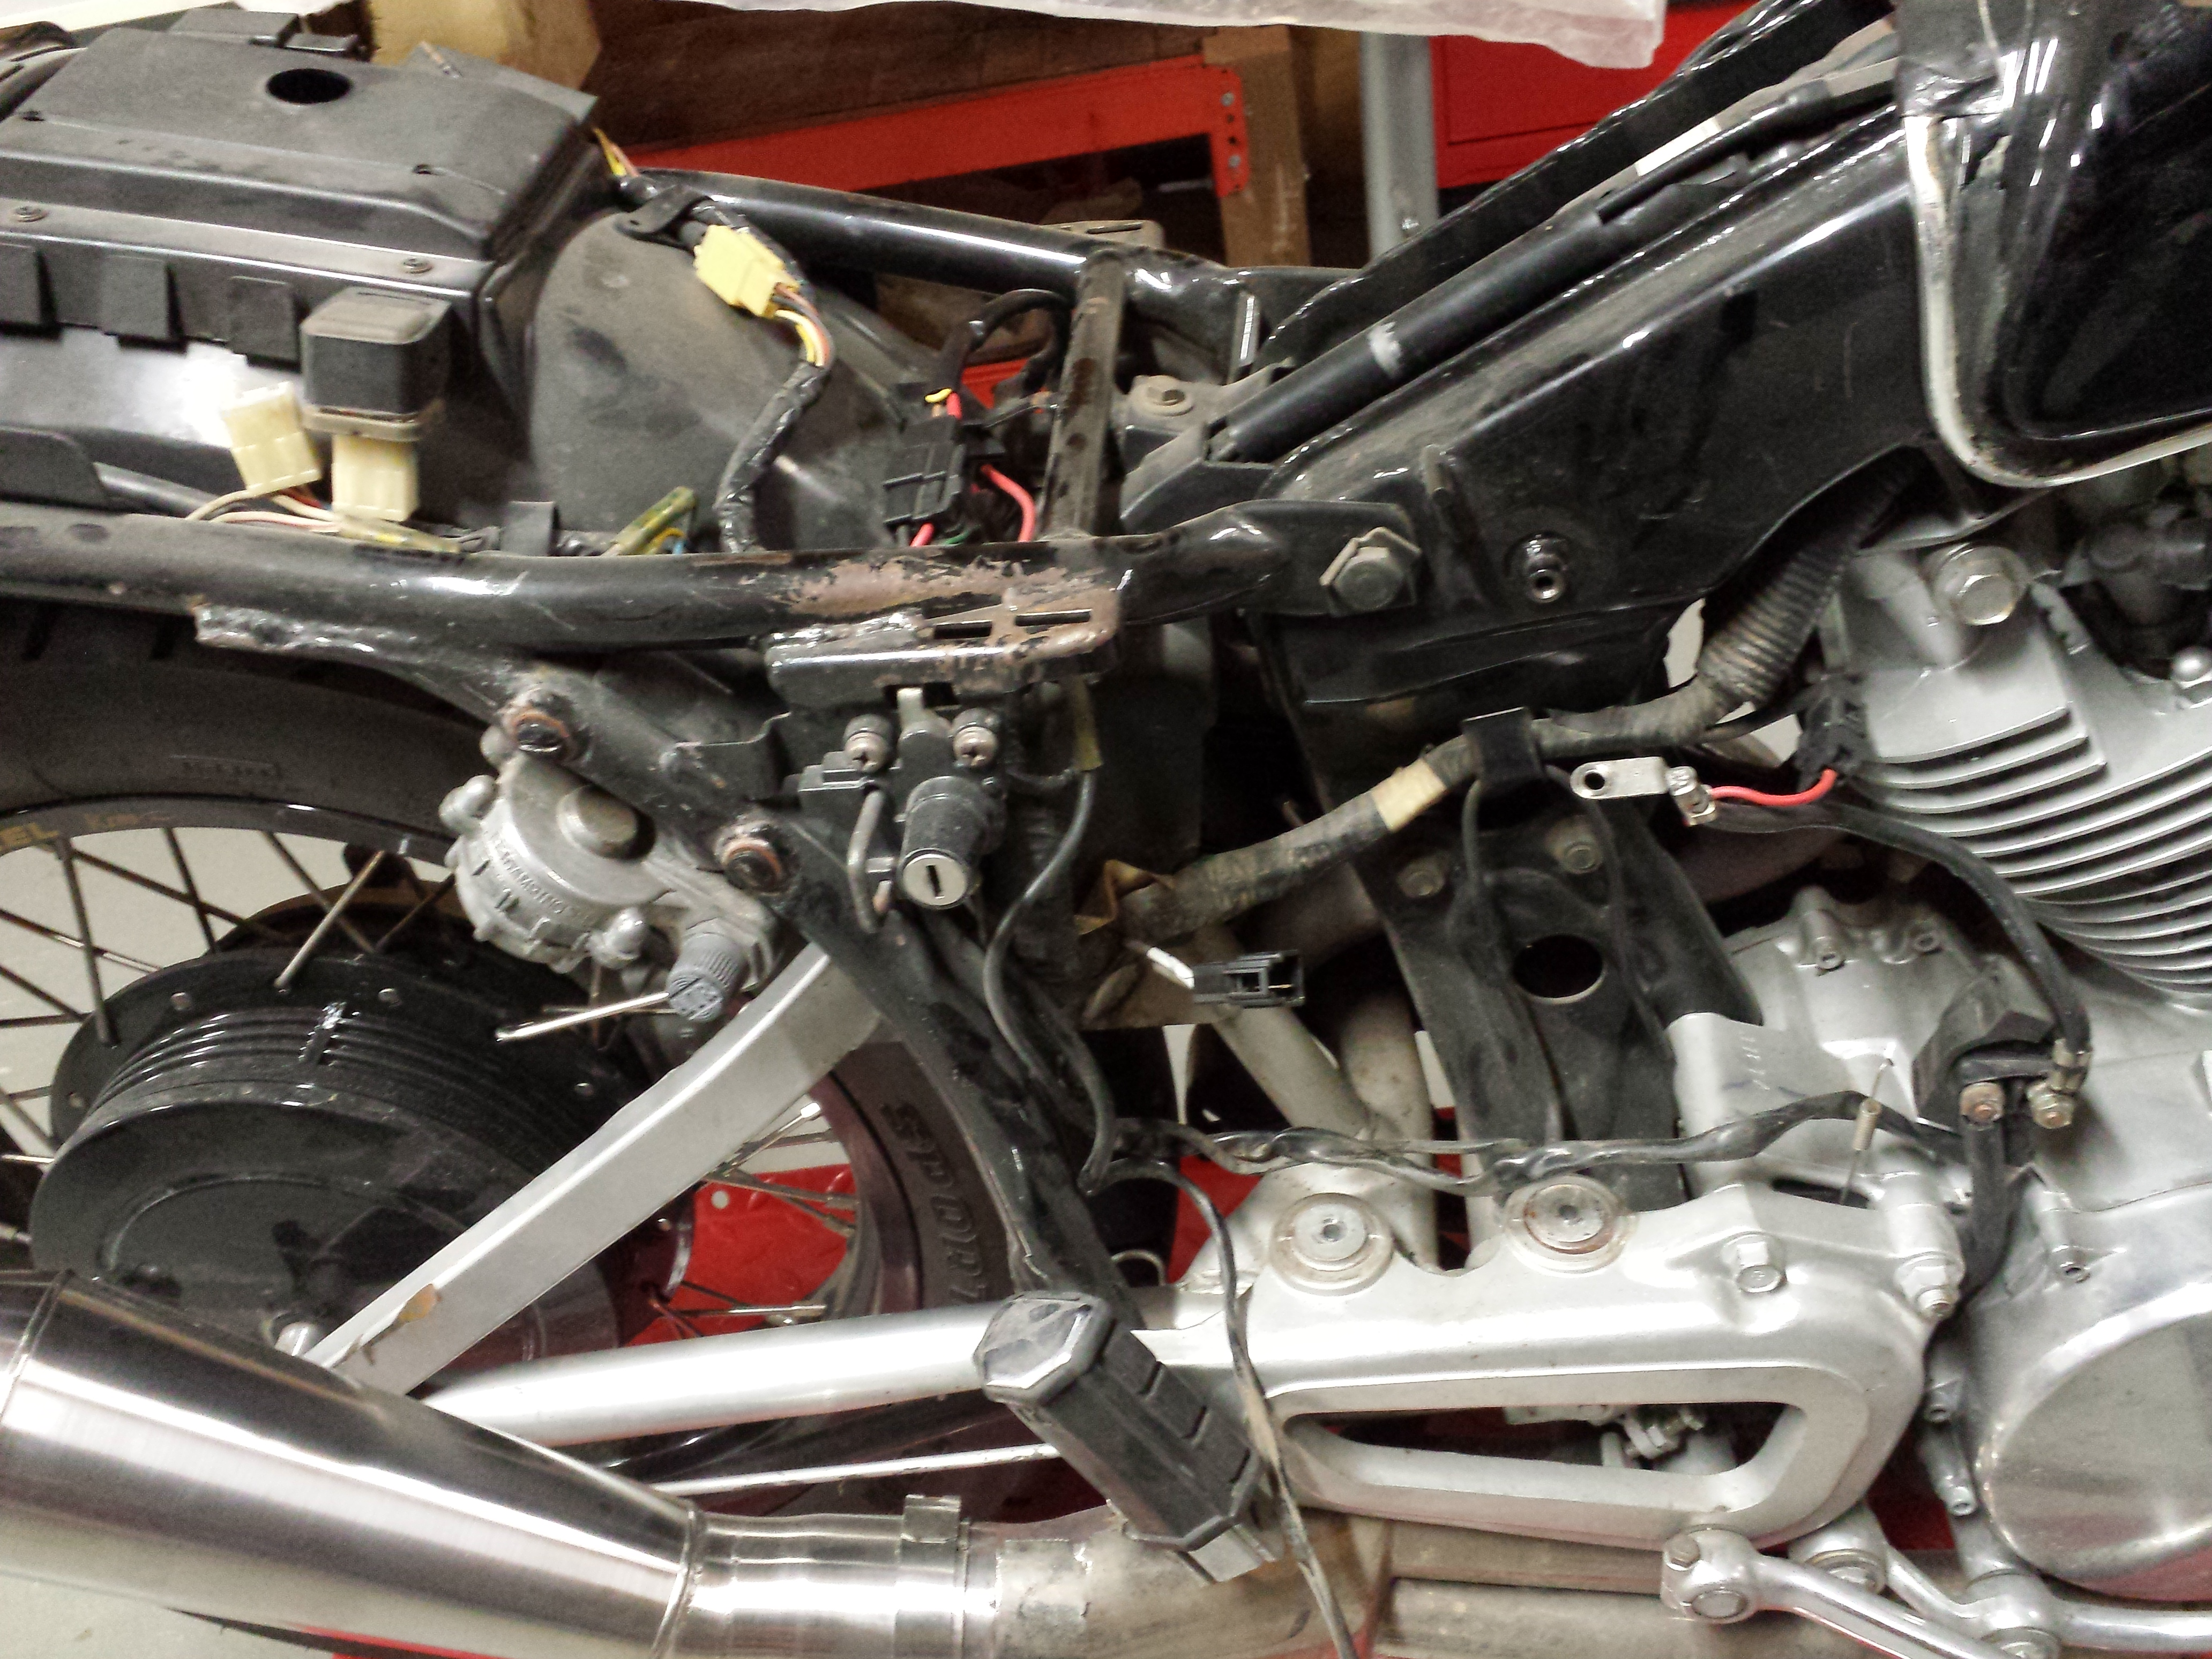 How To Build An Xv750 Cafe Racer Trx850 Stop Light Wiring Diagram Isuzu Foot Pegs Brake And Clutch Peddles Are Next Go